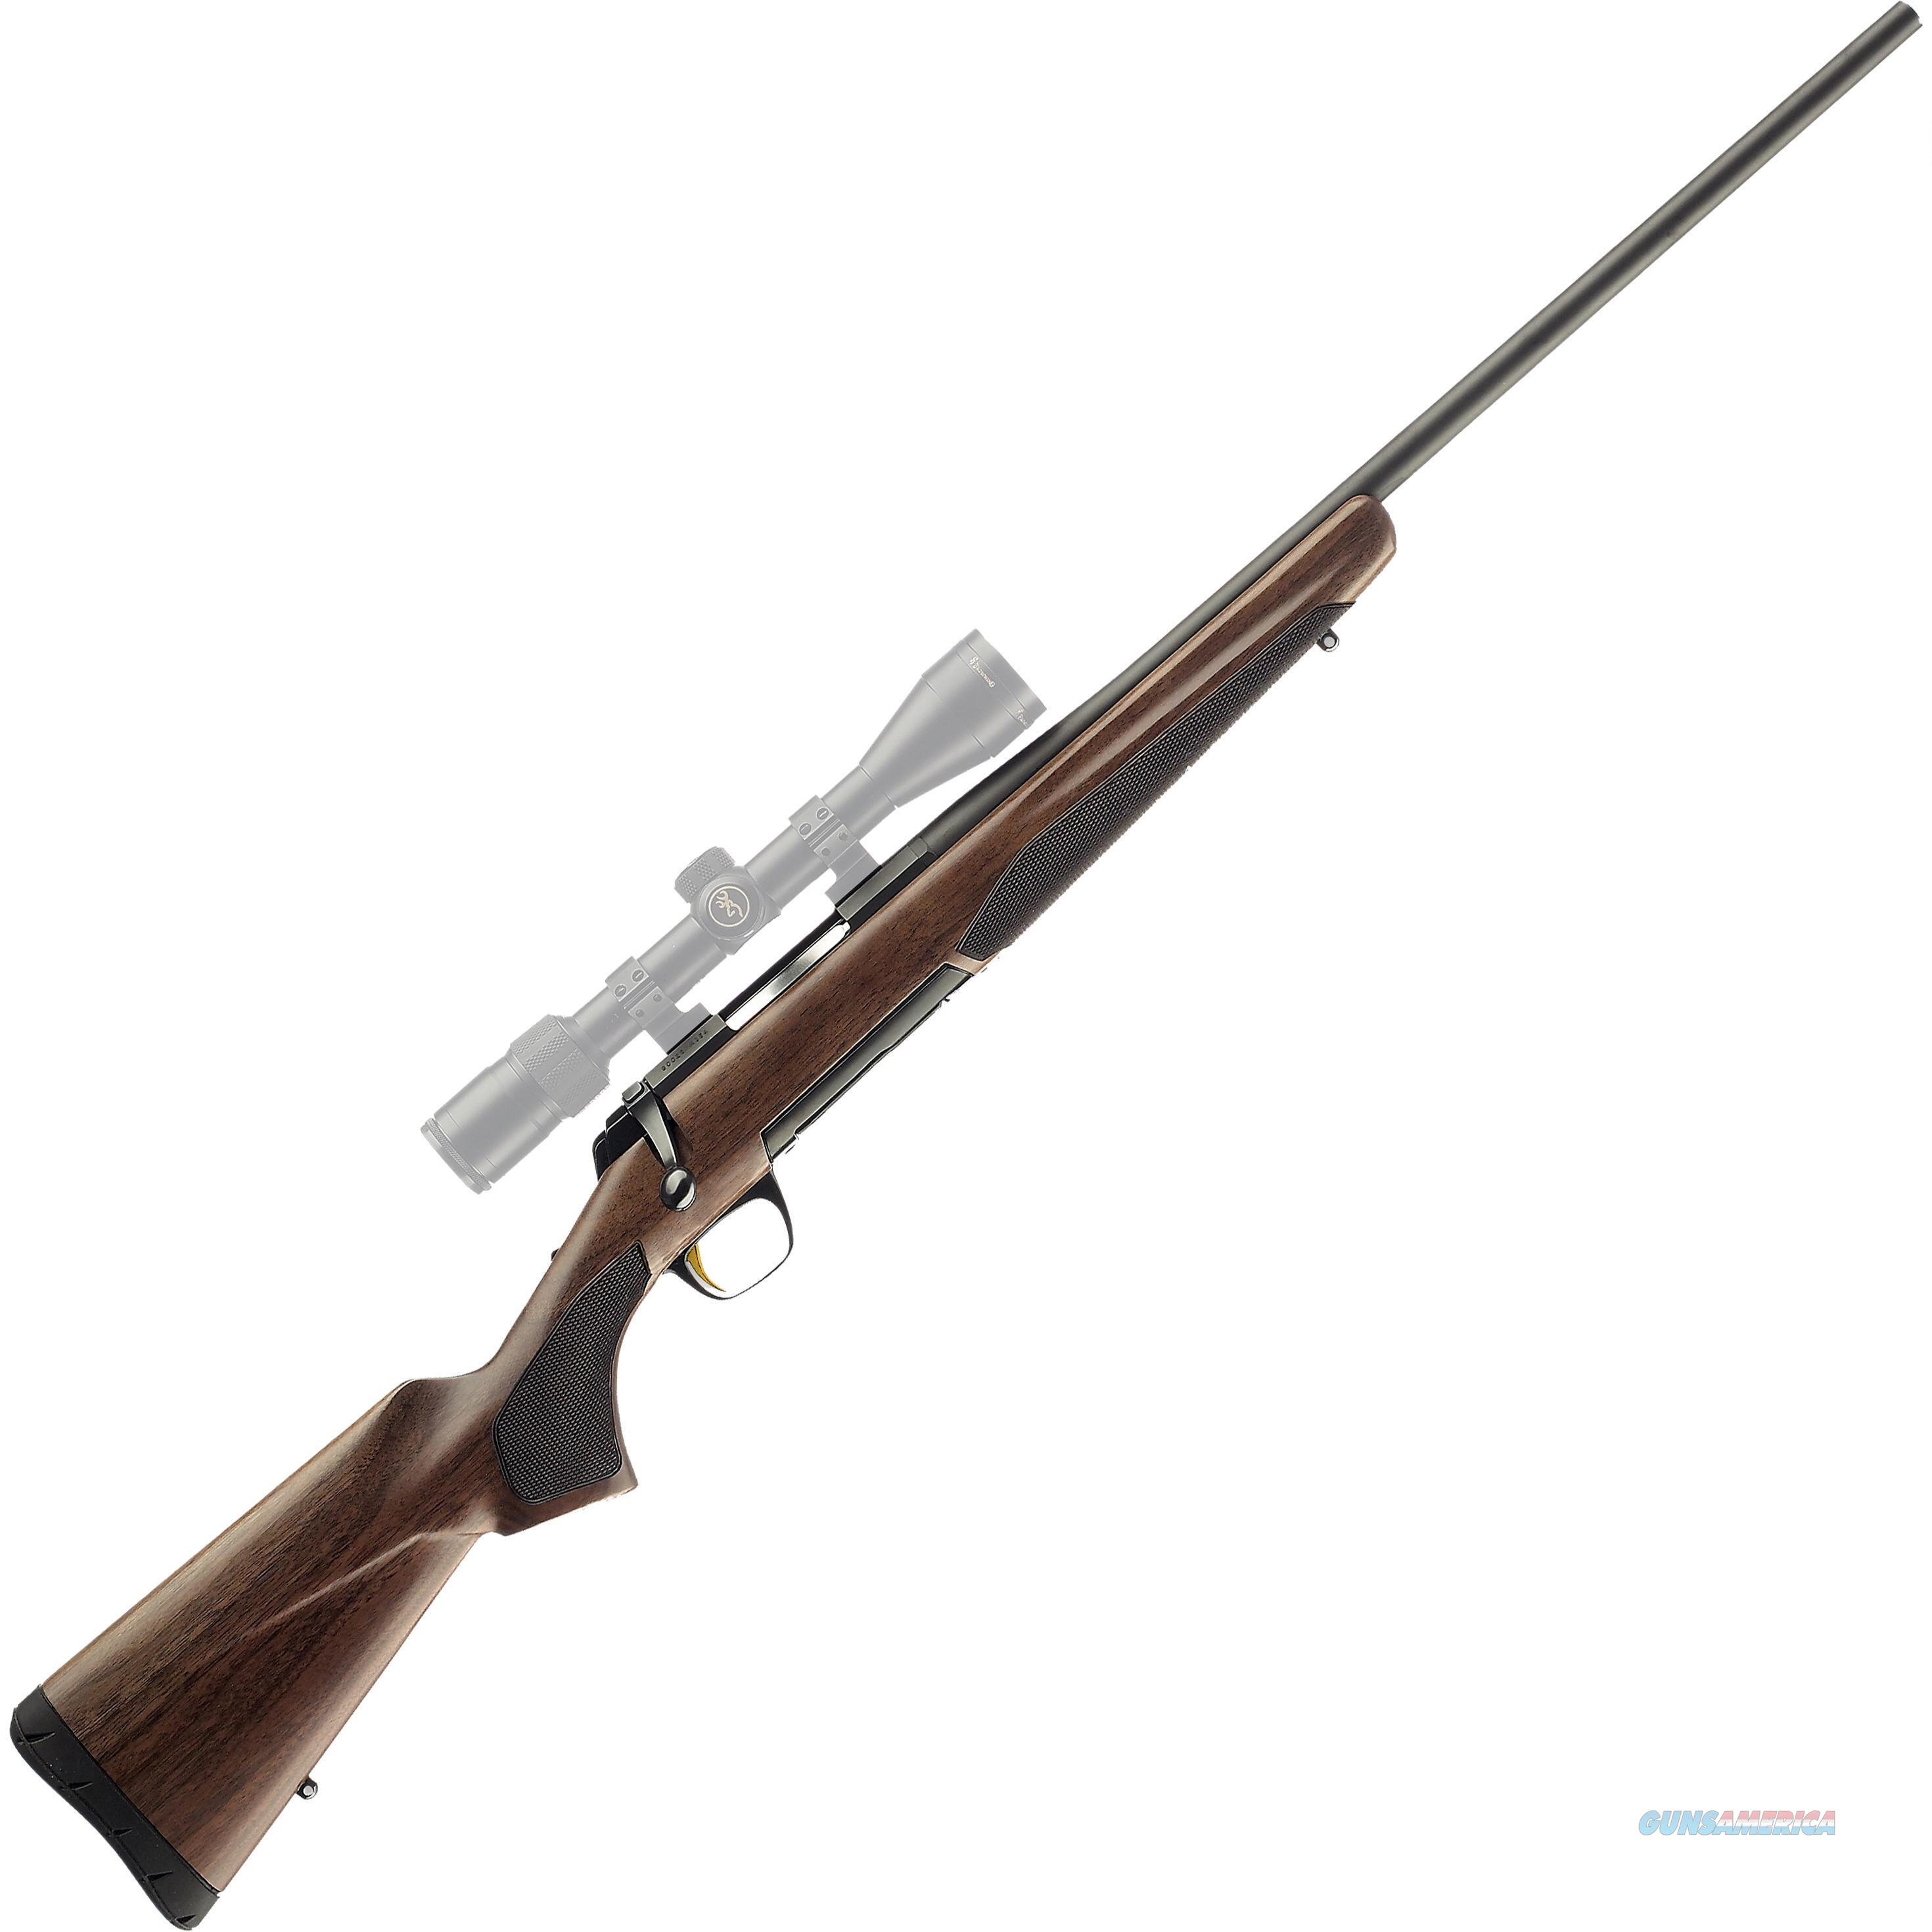 "Browning XBolt Hunter Bolt Action Rifle 3006 Springfield 22"" Barrel Blued 4 Rounds Walnut Stock Matte Blued Finish   Guns > Rifles > Browning Rifles > Bolt Action > Hunting > Blue"